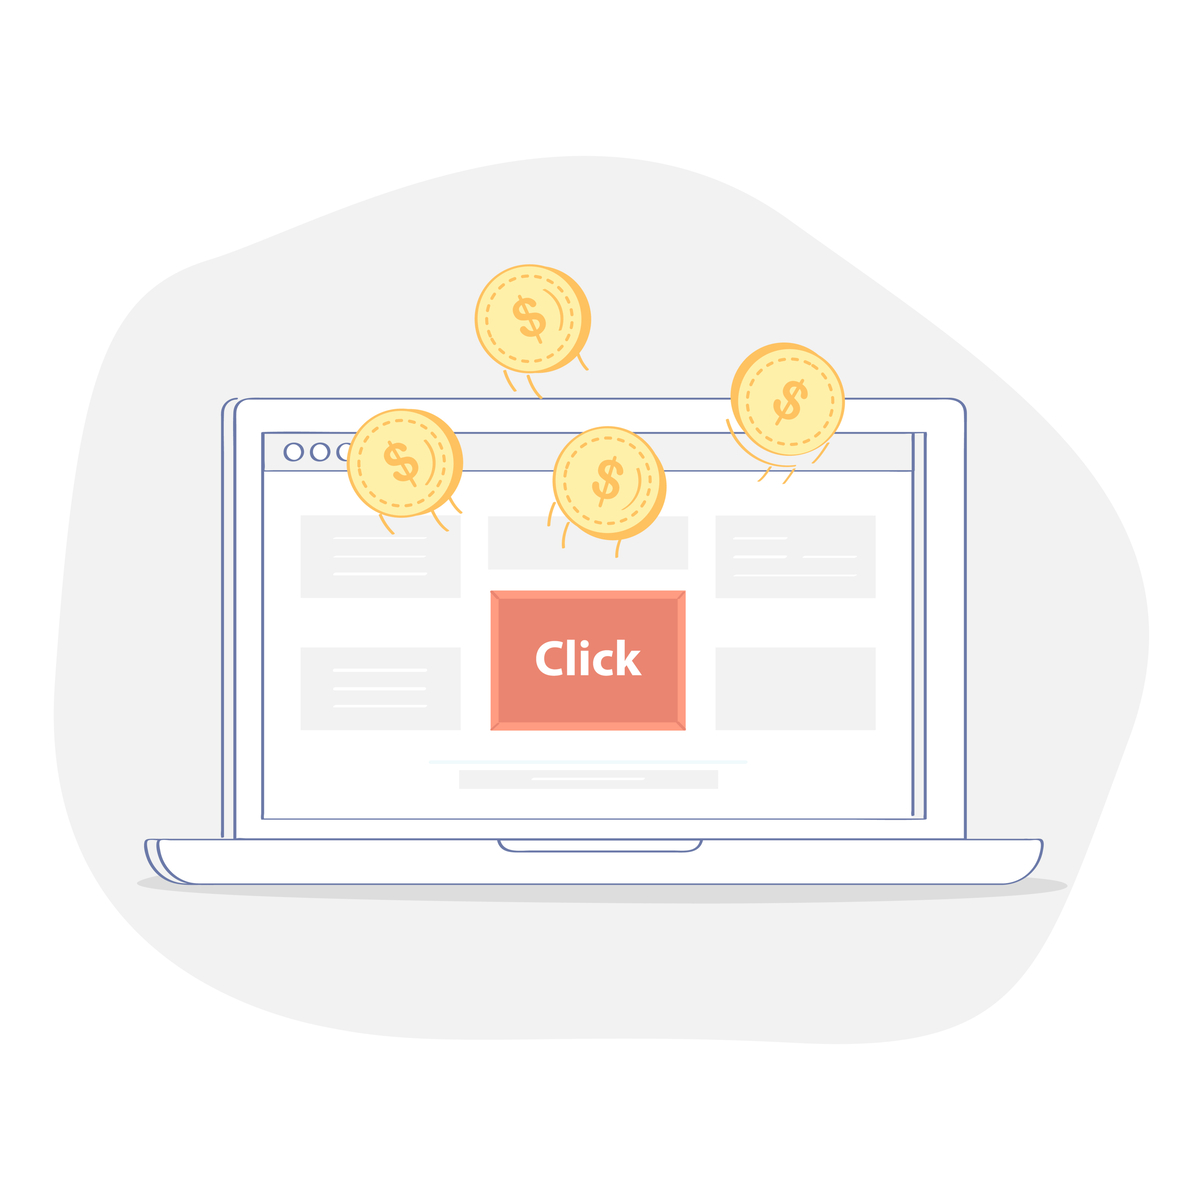 Illustration of a computer screen with some coins and a ''CLICK'' button.